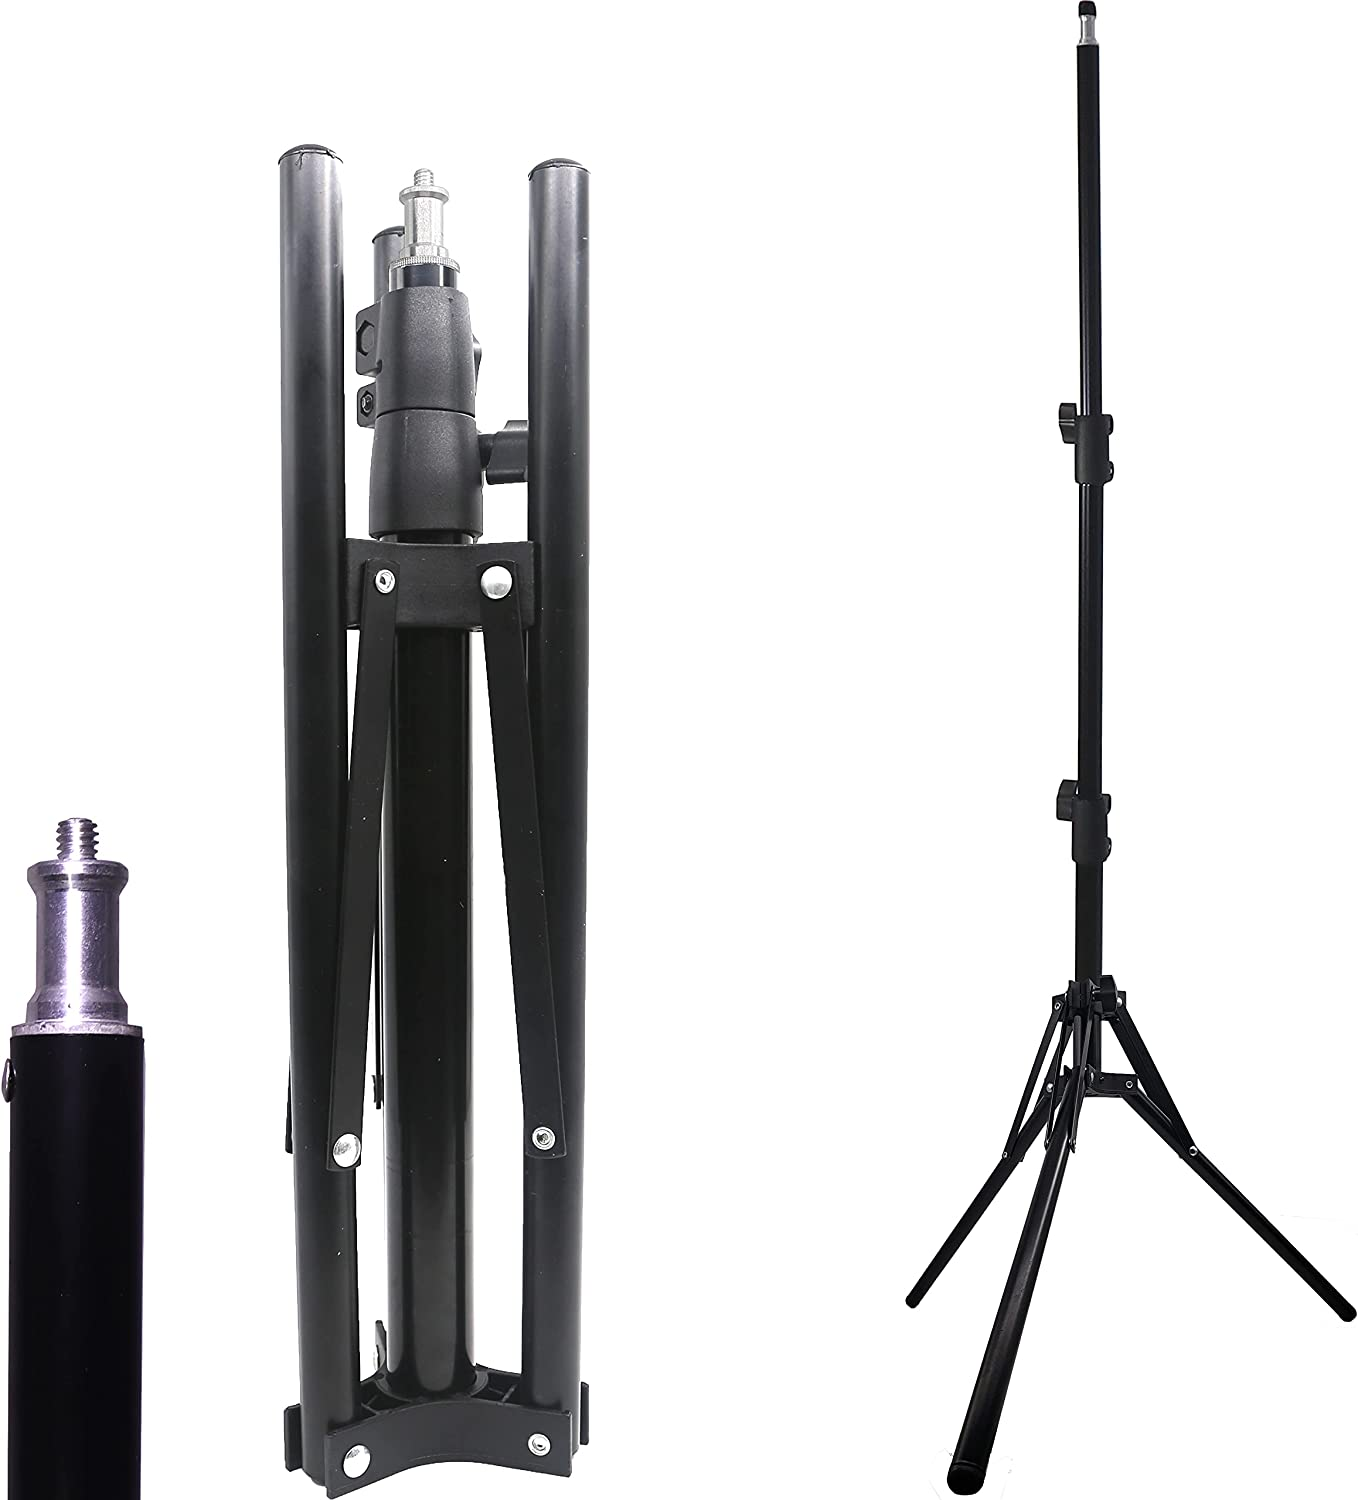 4.2 Foot Limited price sale Aluminum Large-scale sale Tripod Stand Portable and Heavy-Duty Foldable